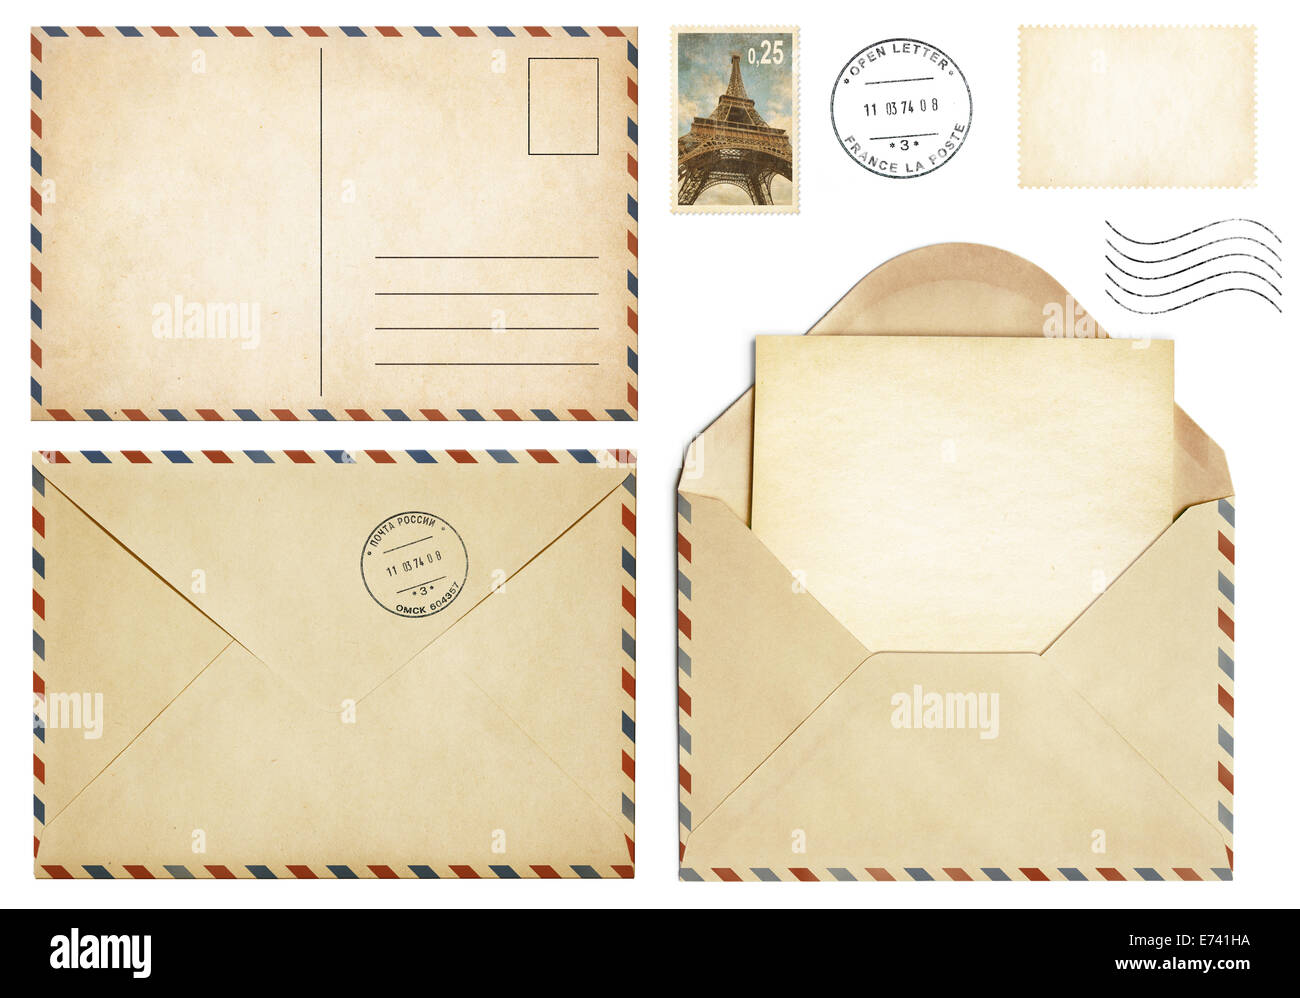 Old postcard, mail envelope, open letter, stamp collection - Stock Image